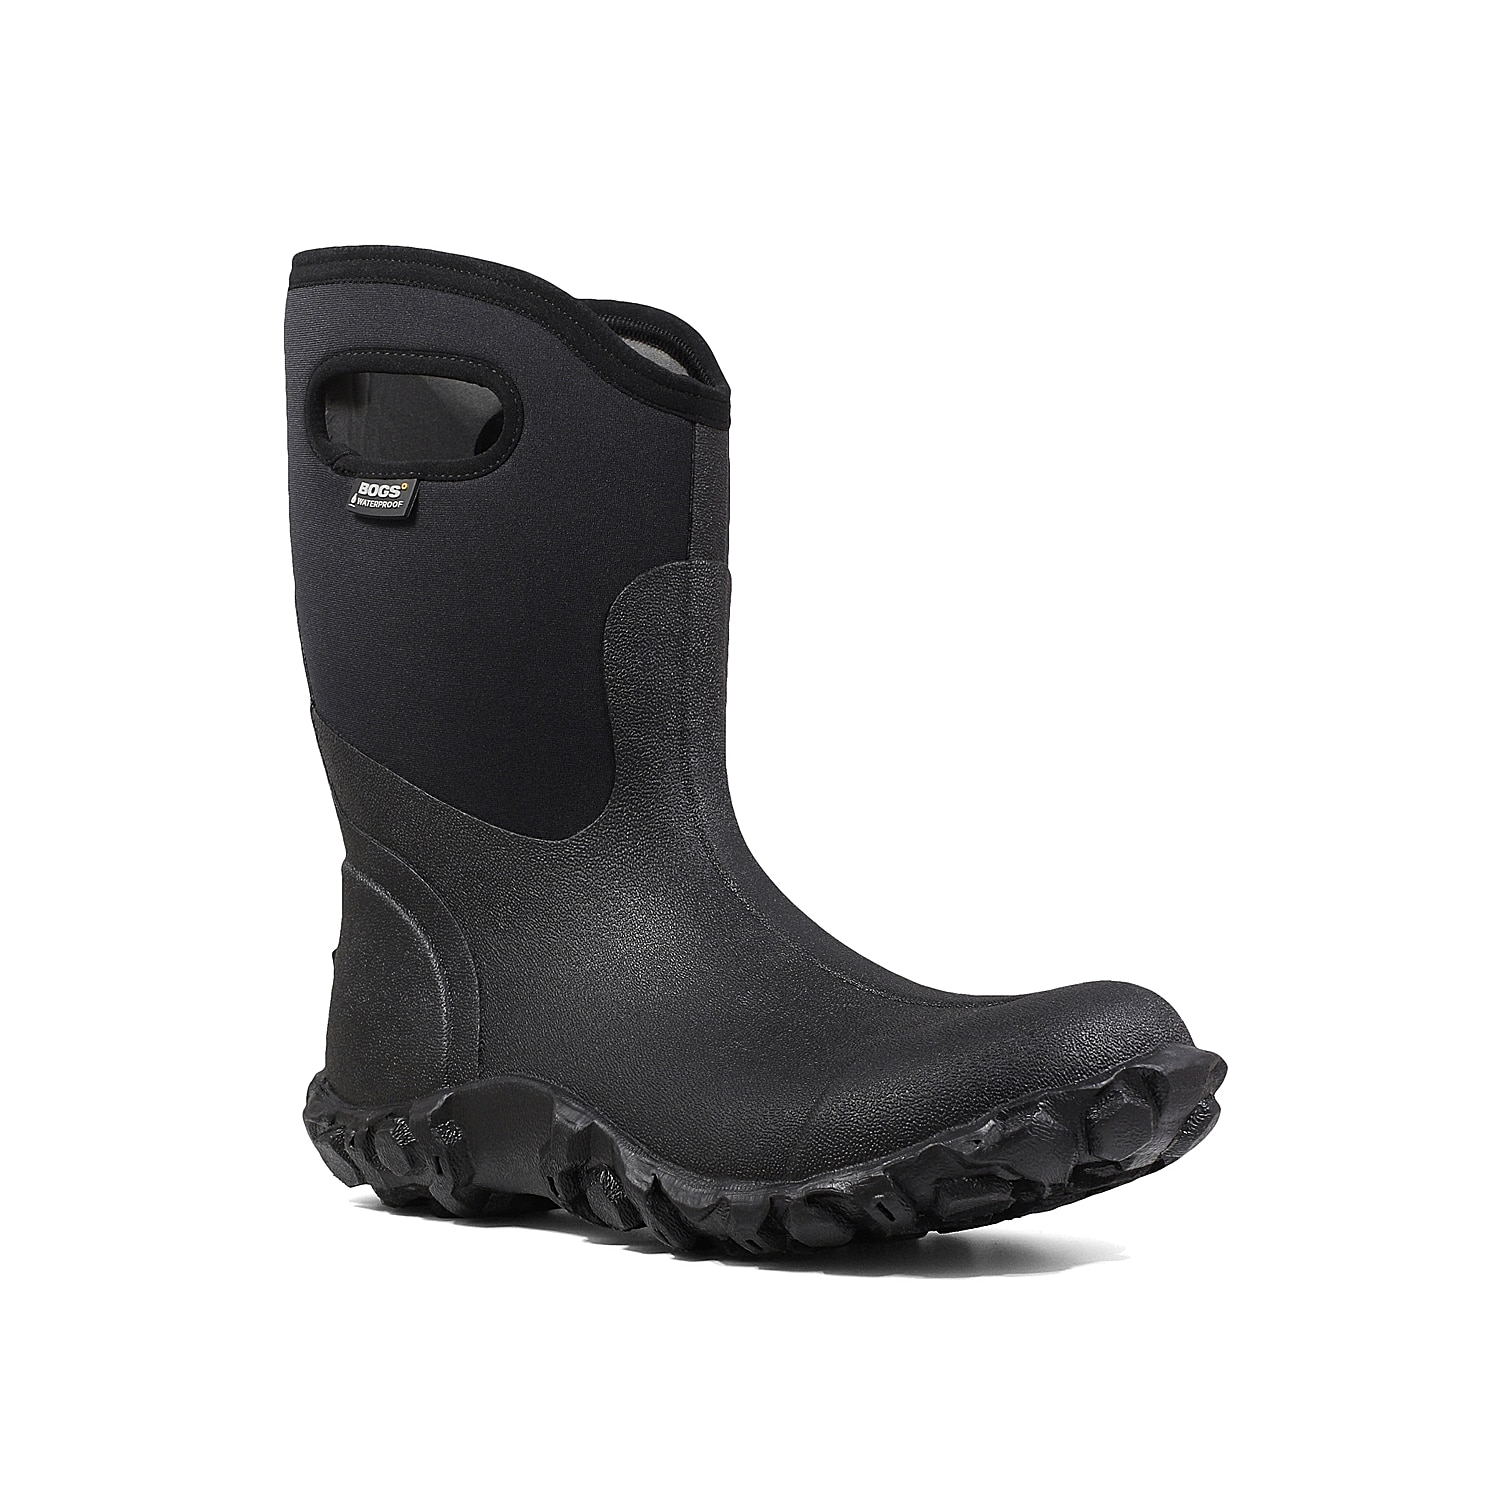 Whether through snow or rain, the Parker boot from Bogs will keep you cozy exploring the great outdoors. This mid-top pair features a waterproof construction and slip-resistant sole to keep you dry and safe at all times.